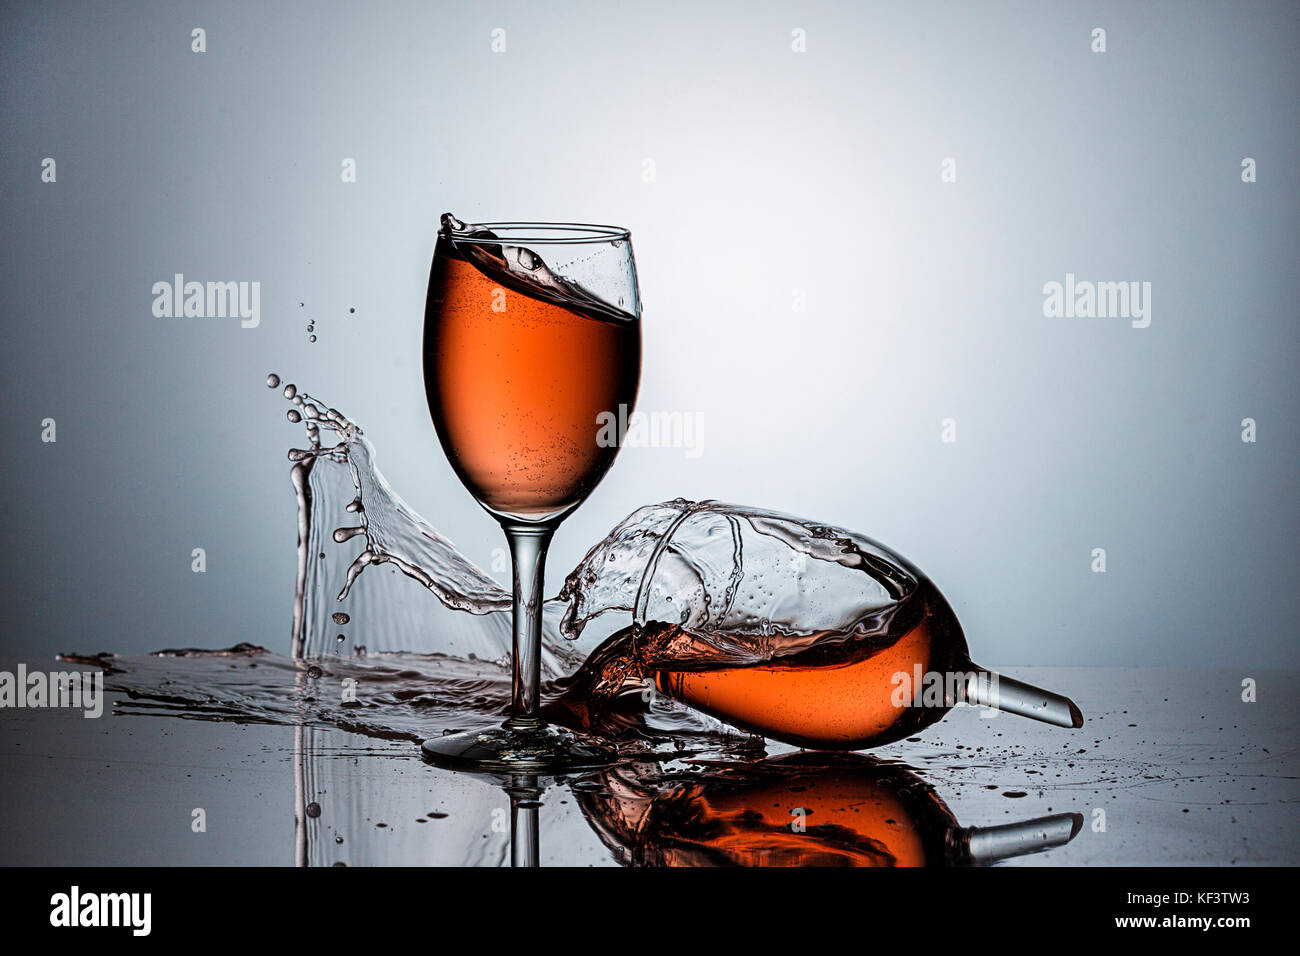 A broken wine glass spills wine after being dropped. - Stock Image